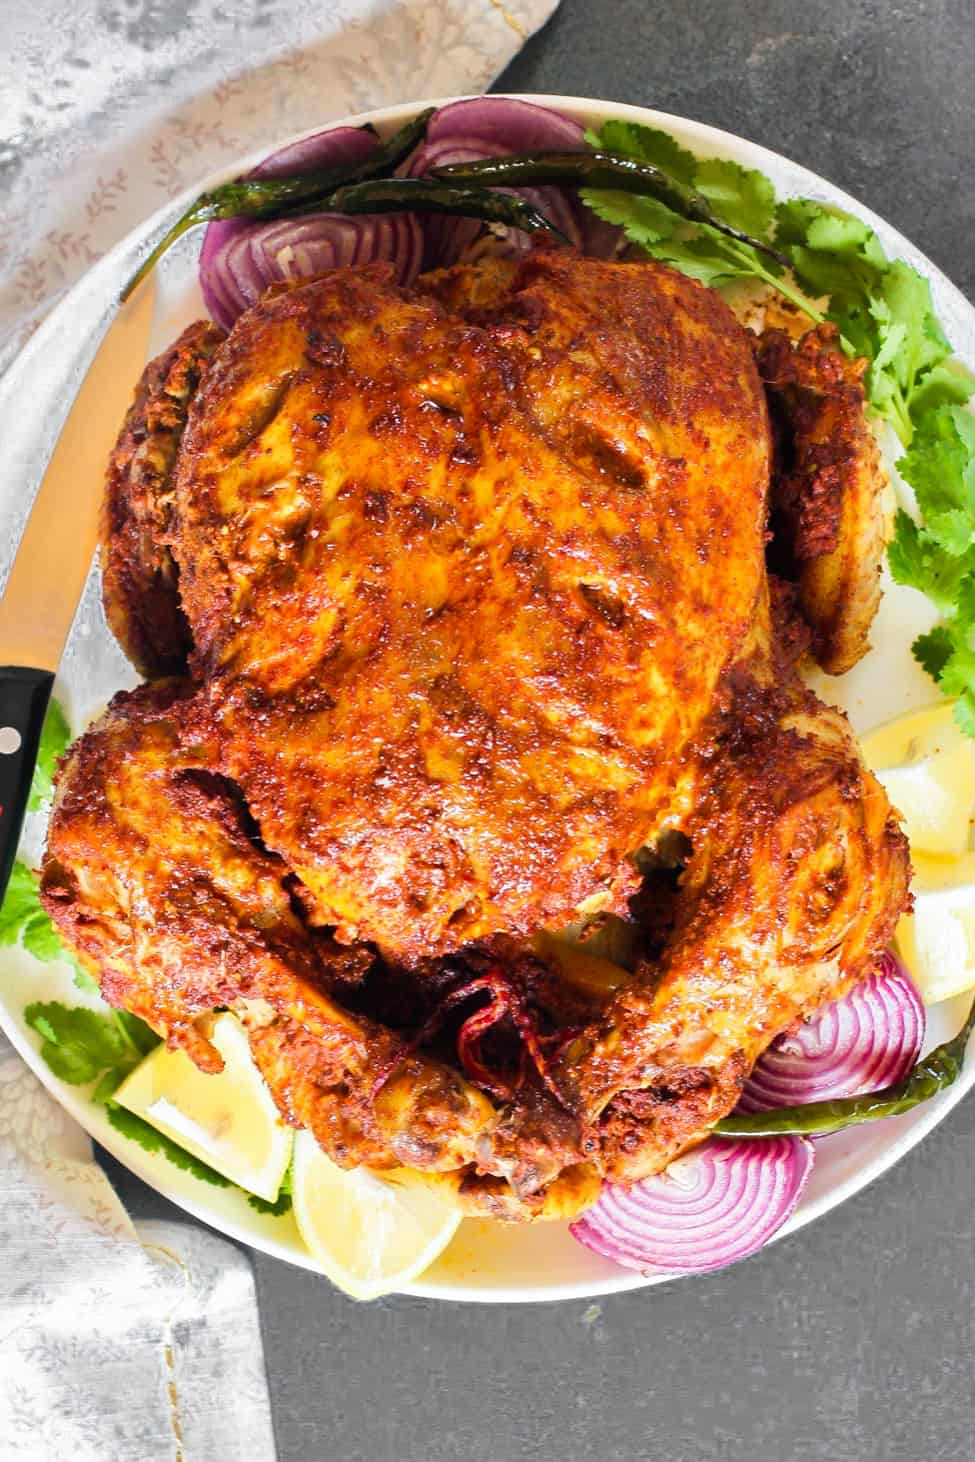 Whole Tandoori Chicken in a platter